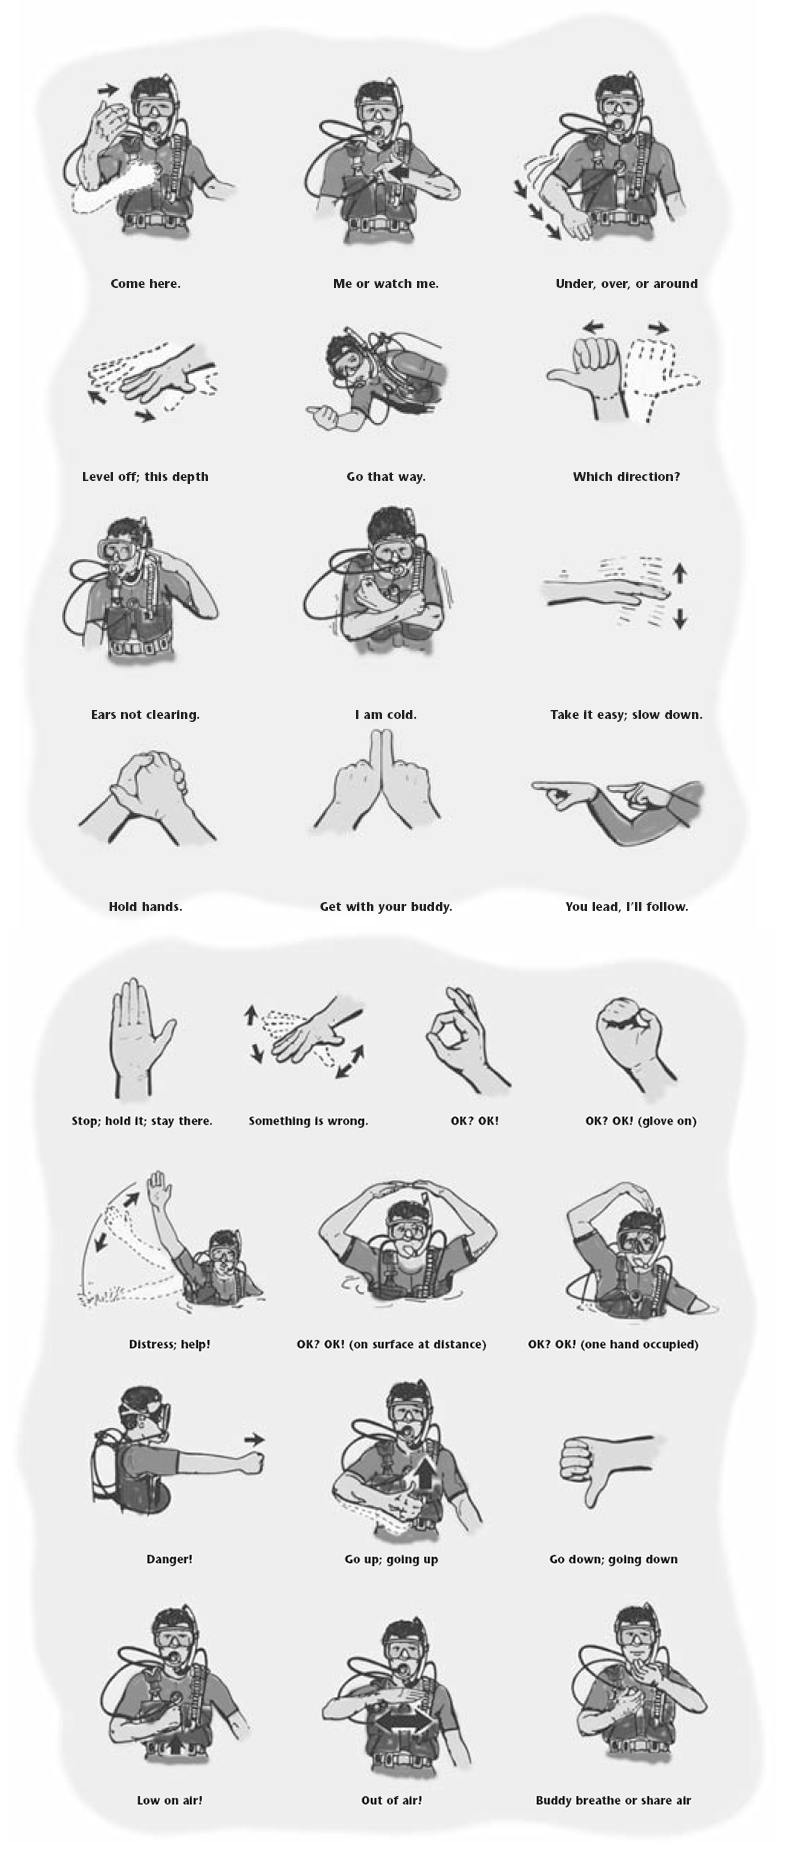 standard-scuba-diving-hand-signals.png It's missing the one my husband uses when I get too far away from him. How he learned to yell with his hands, I'll never know.